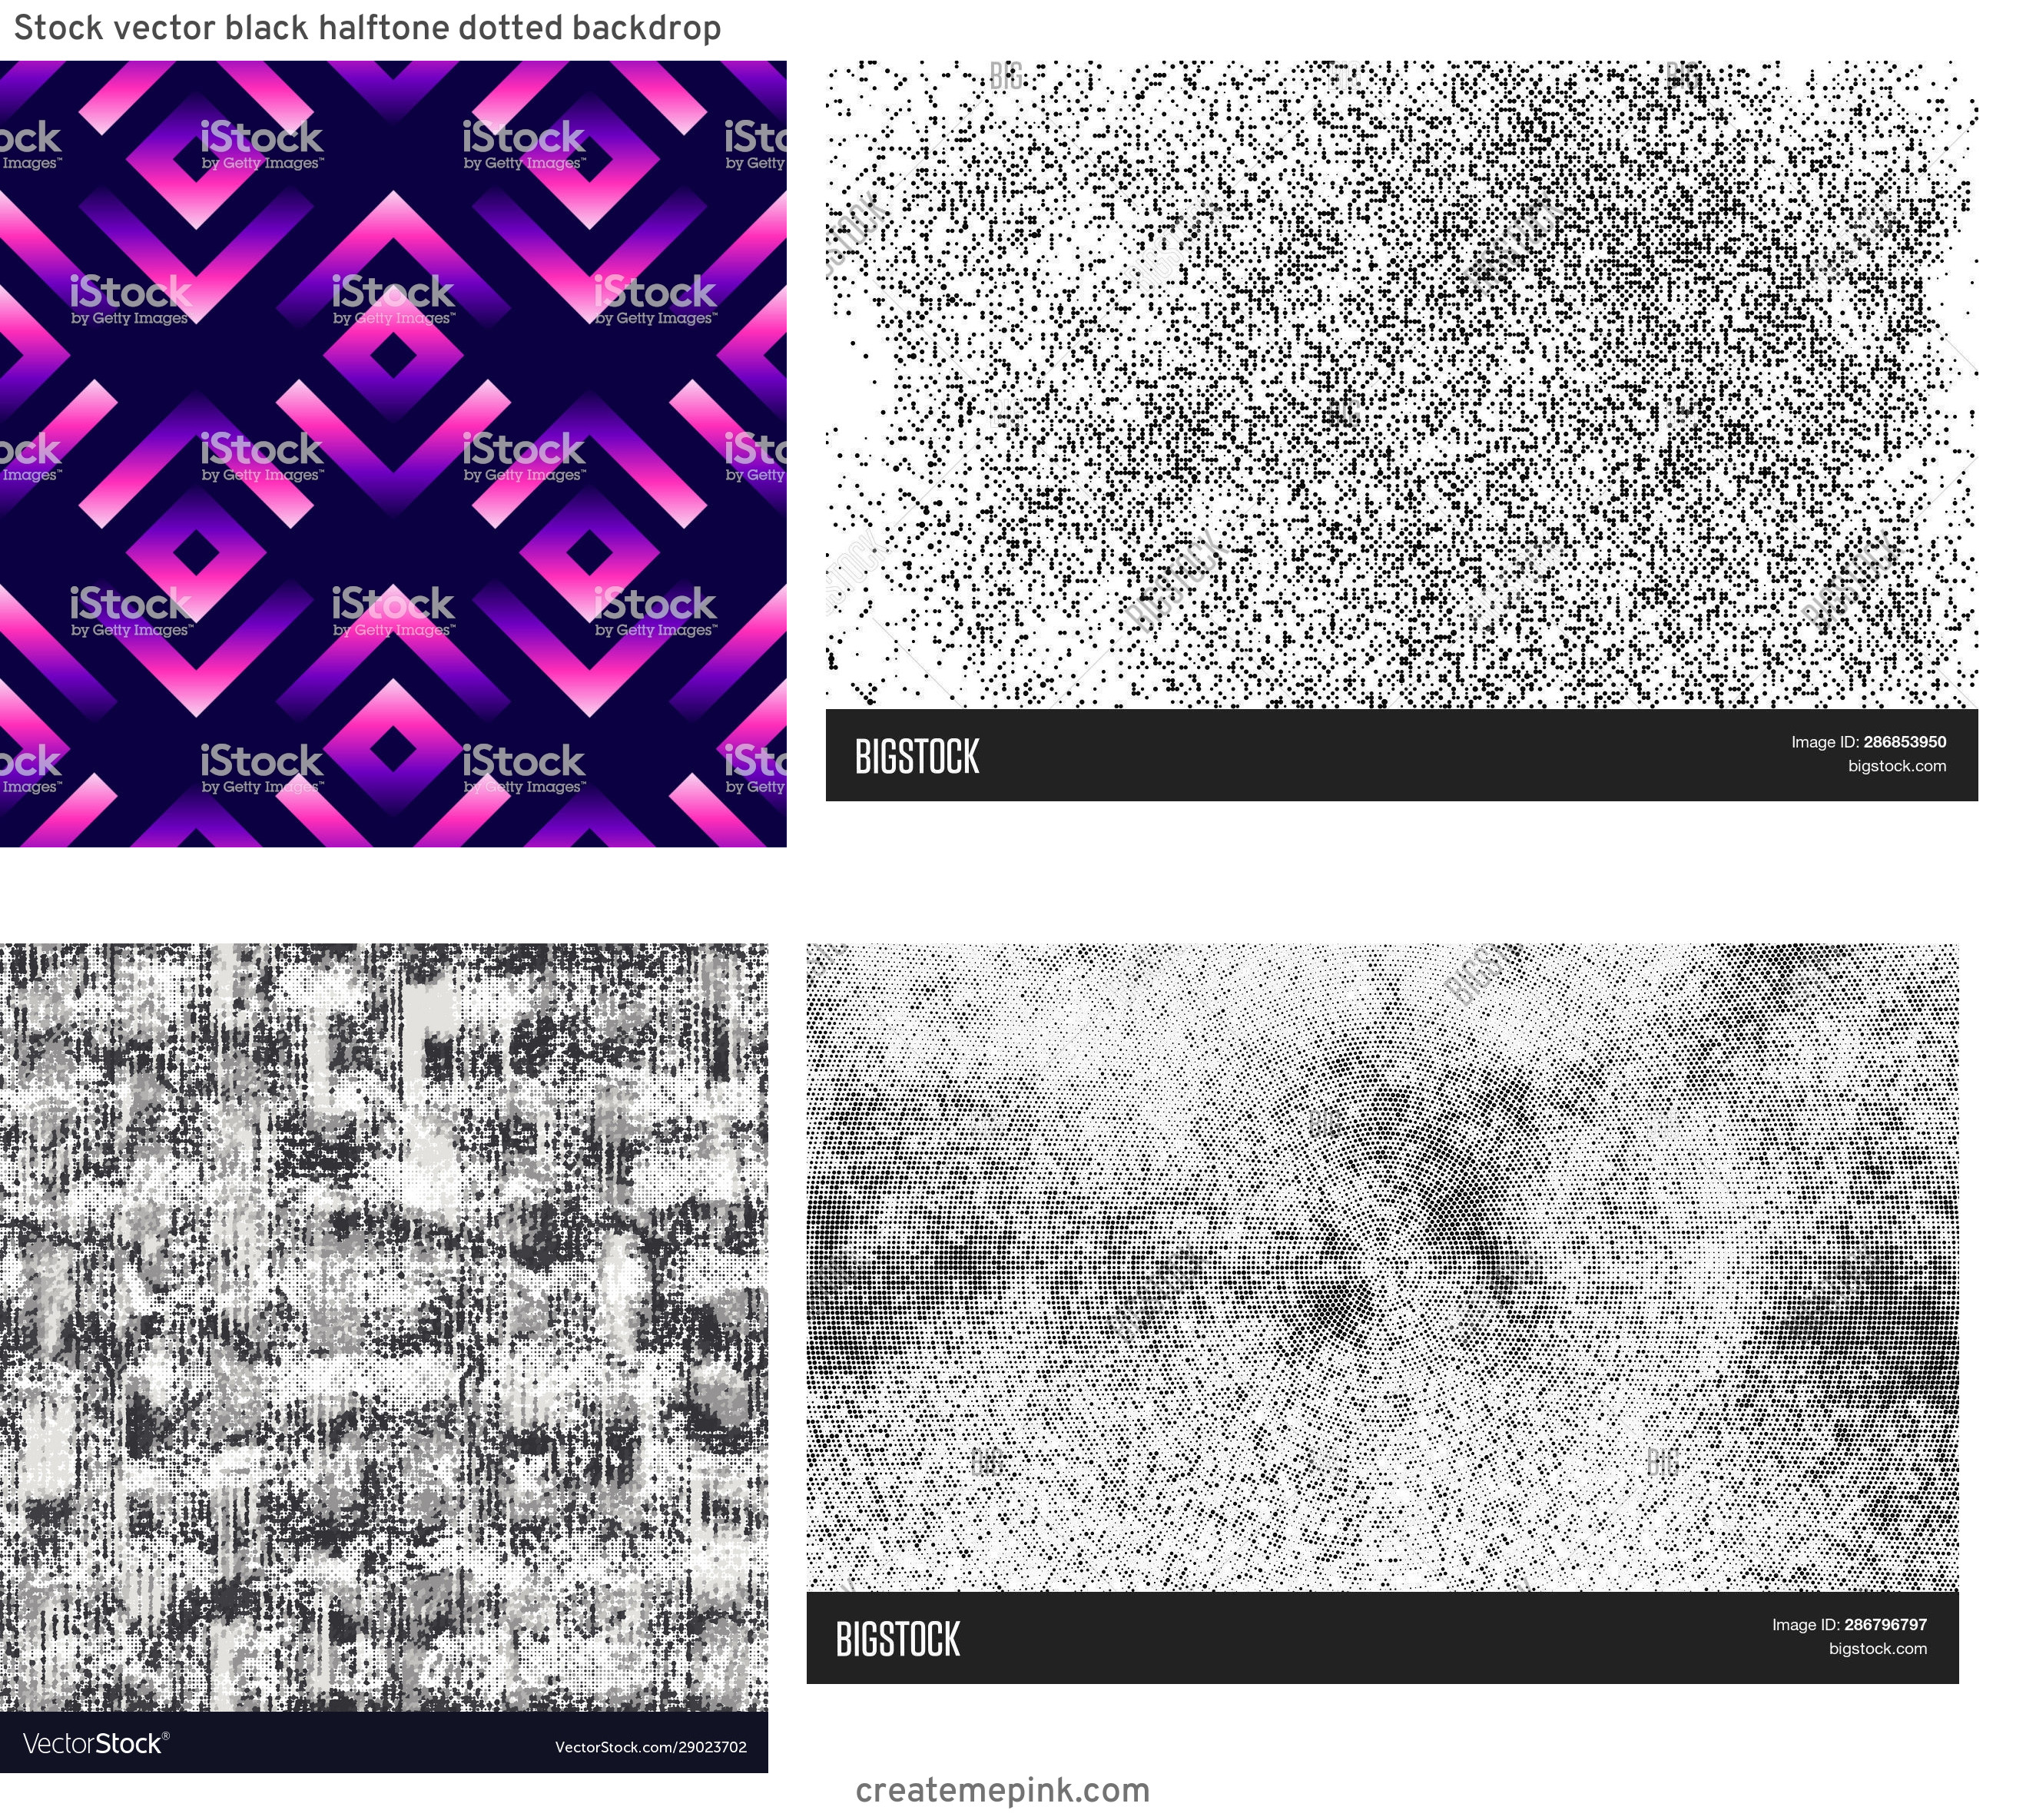 Modern Fading Vector Pattern: Stock Vector Black Halftone Dotted Backdrop